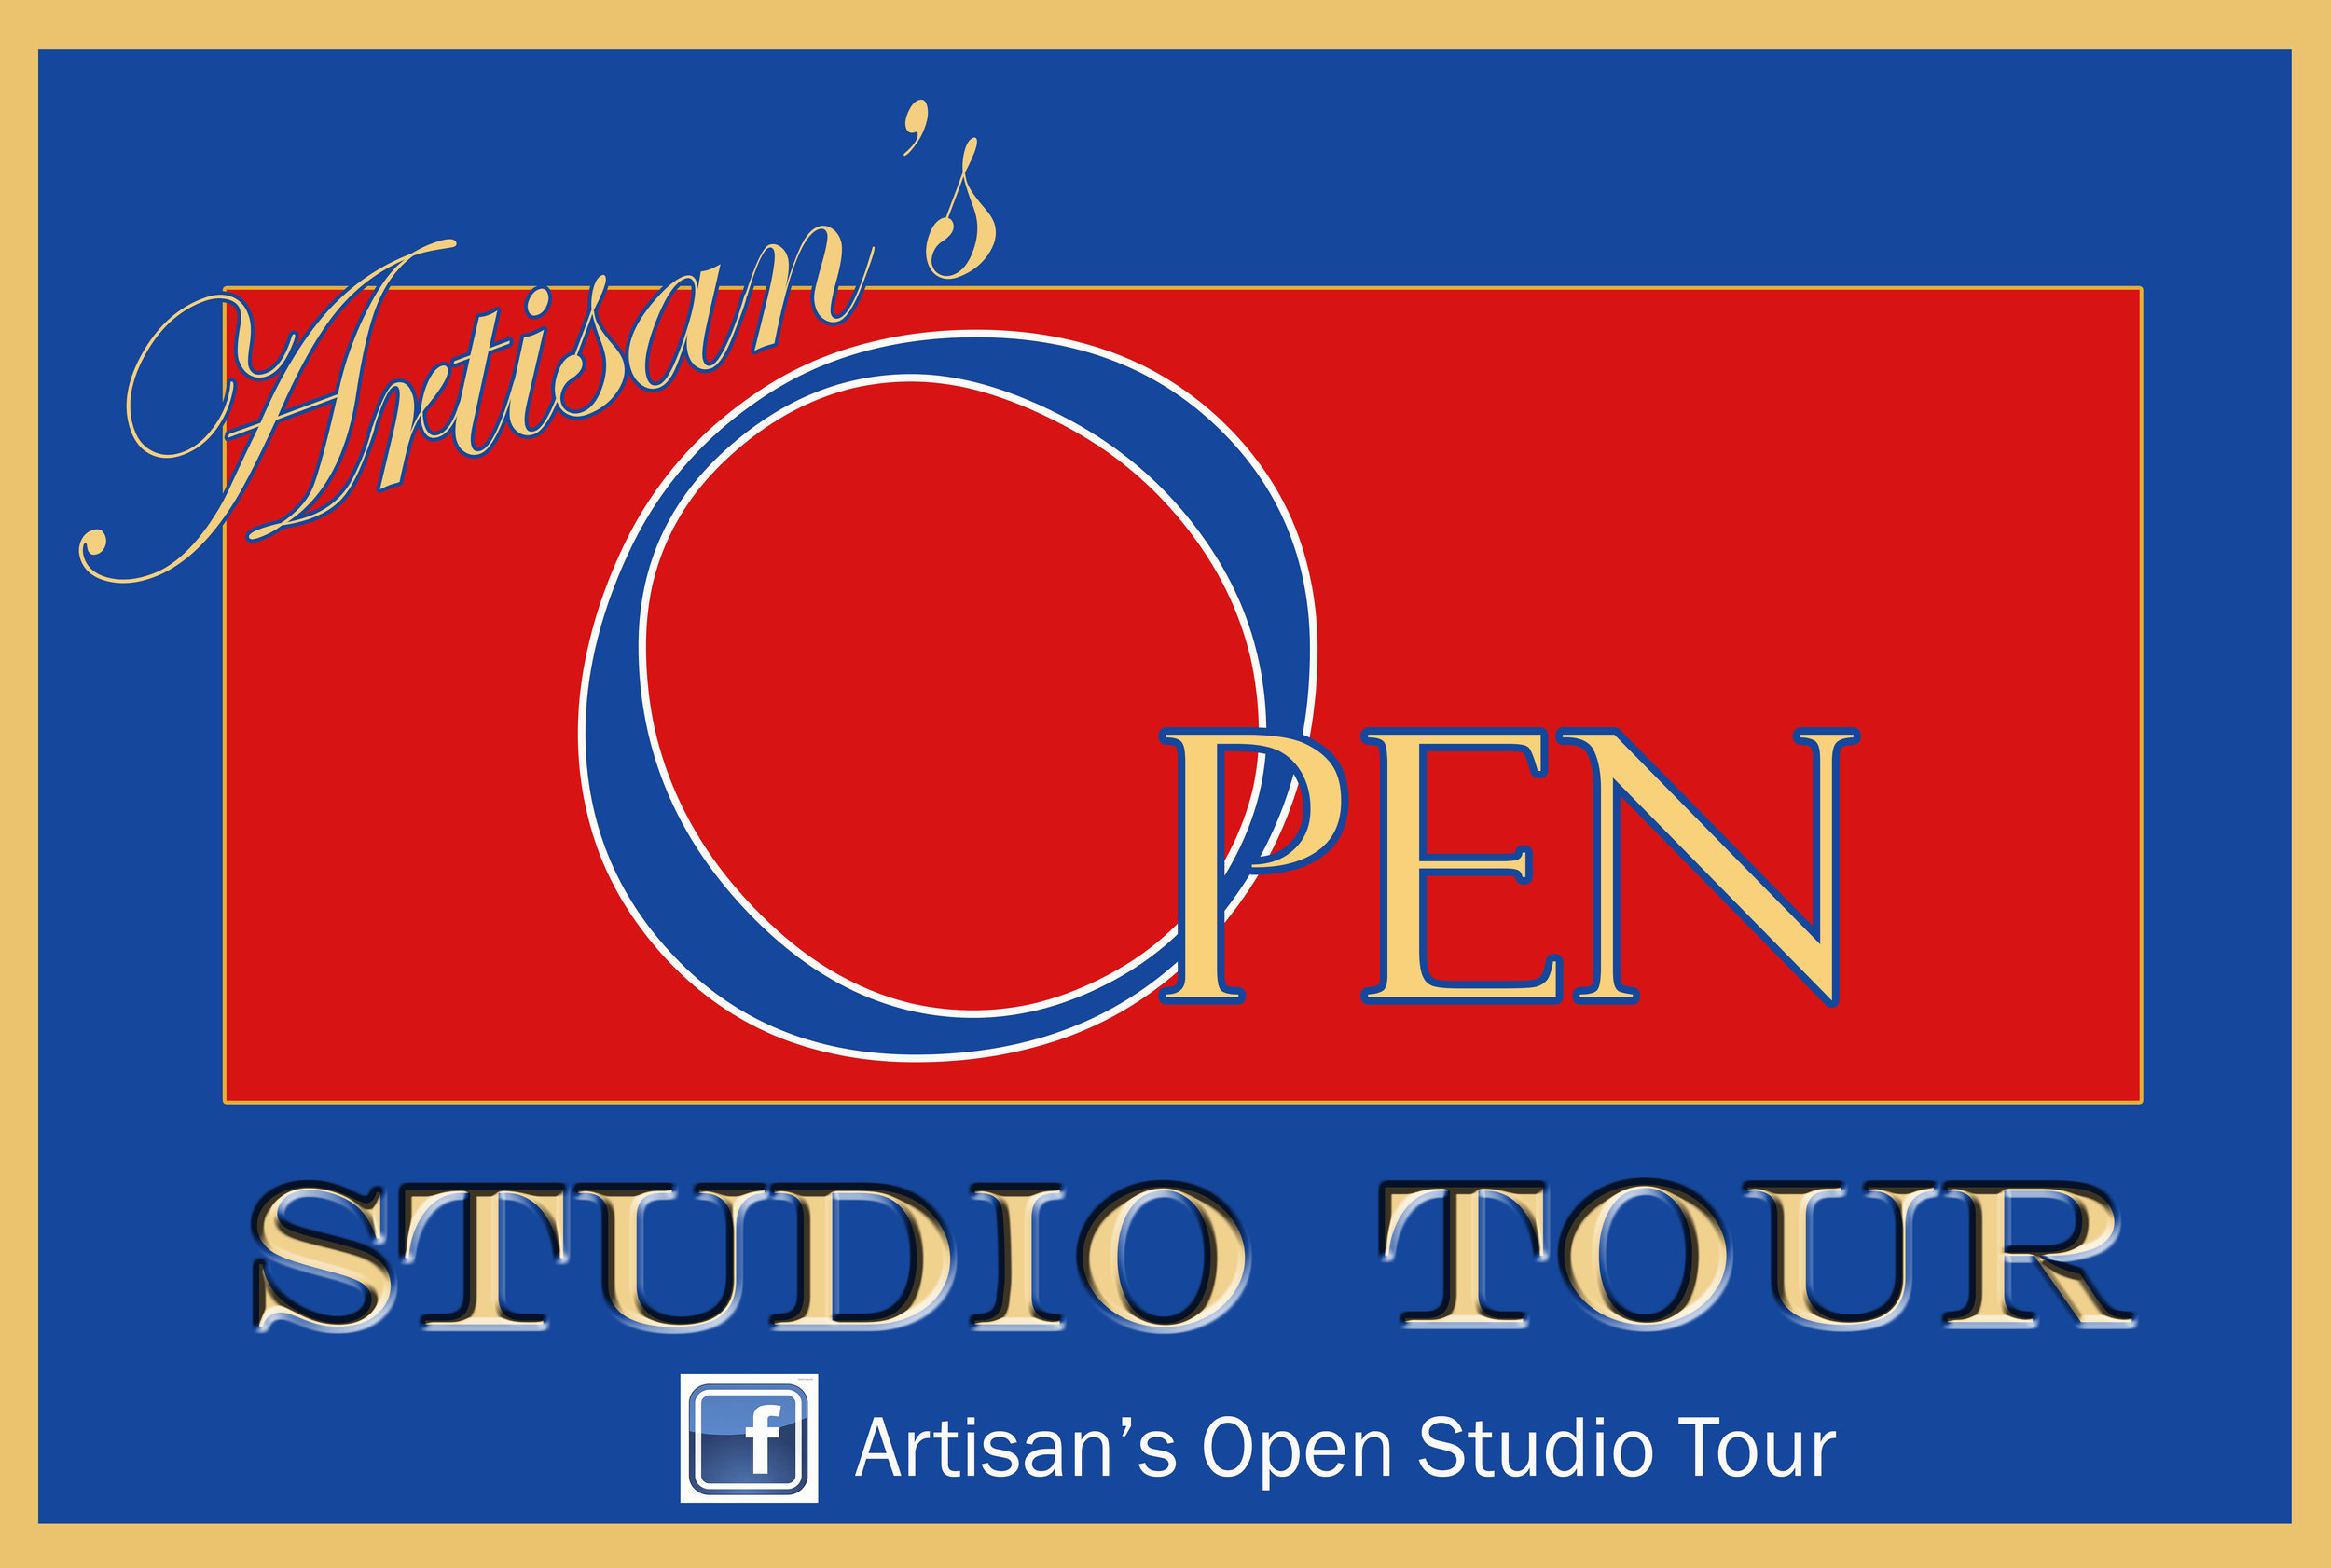 studio tour yard sign.jpg